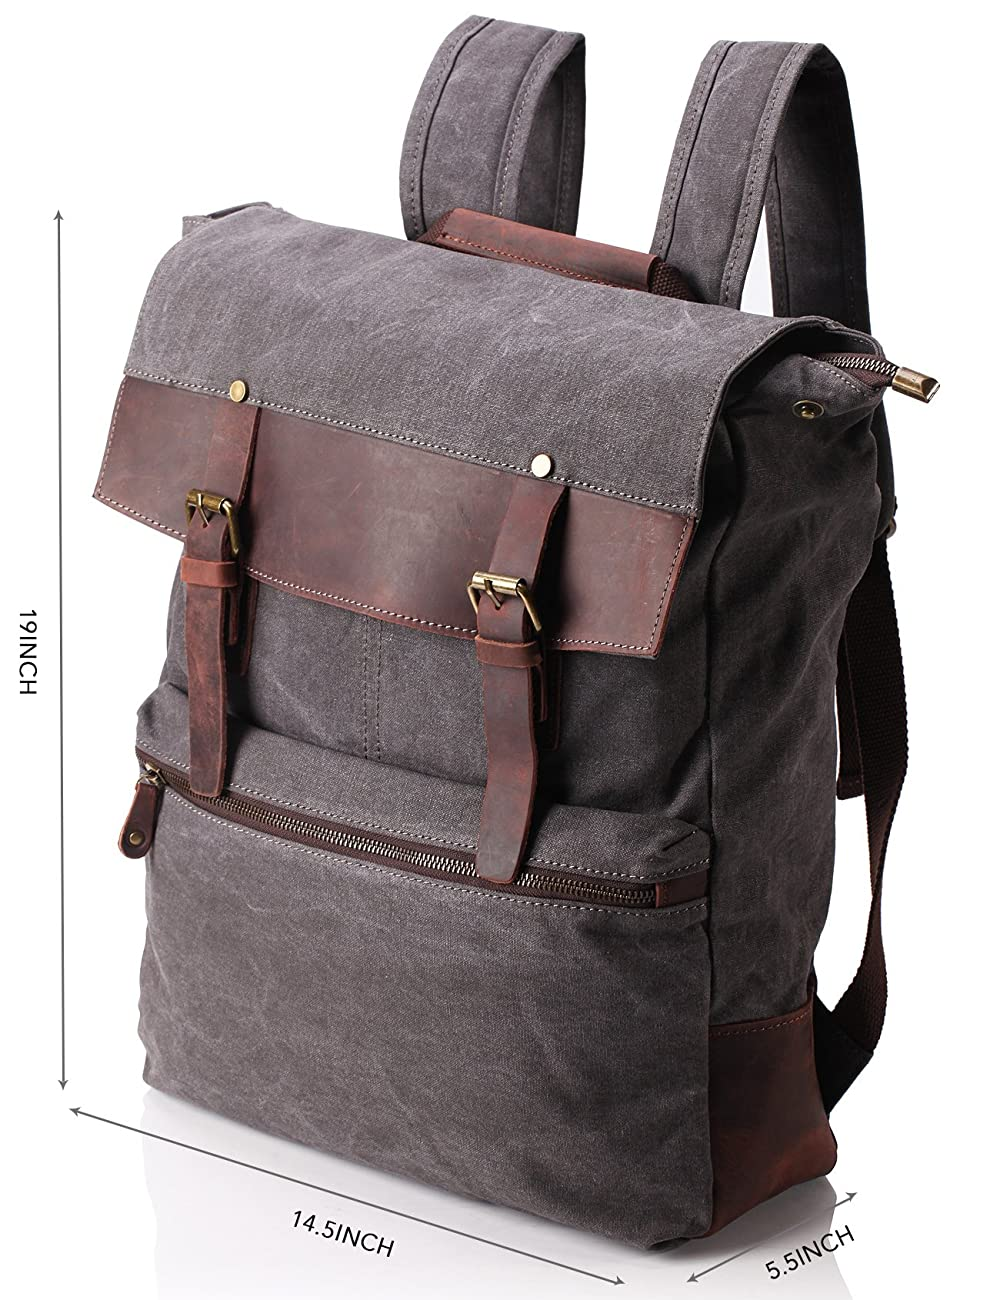 ZEKAR Vintage Waxed Canvas Leather Backpack, Multipurpose Daypacks 1